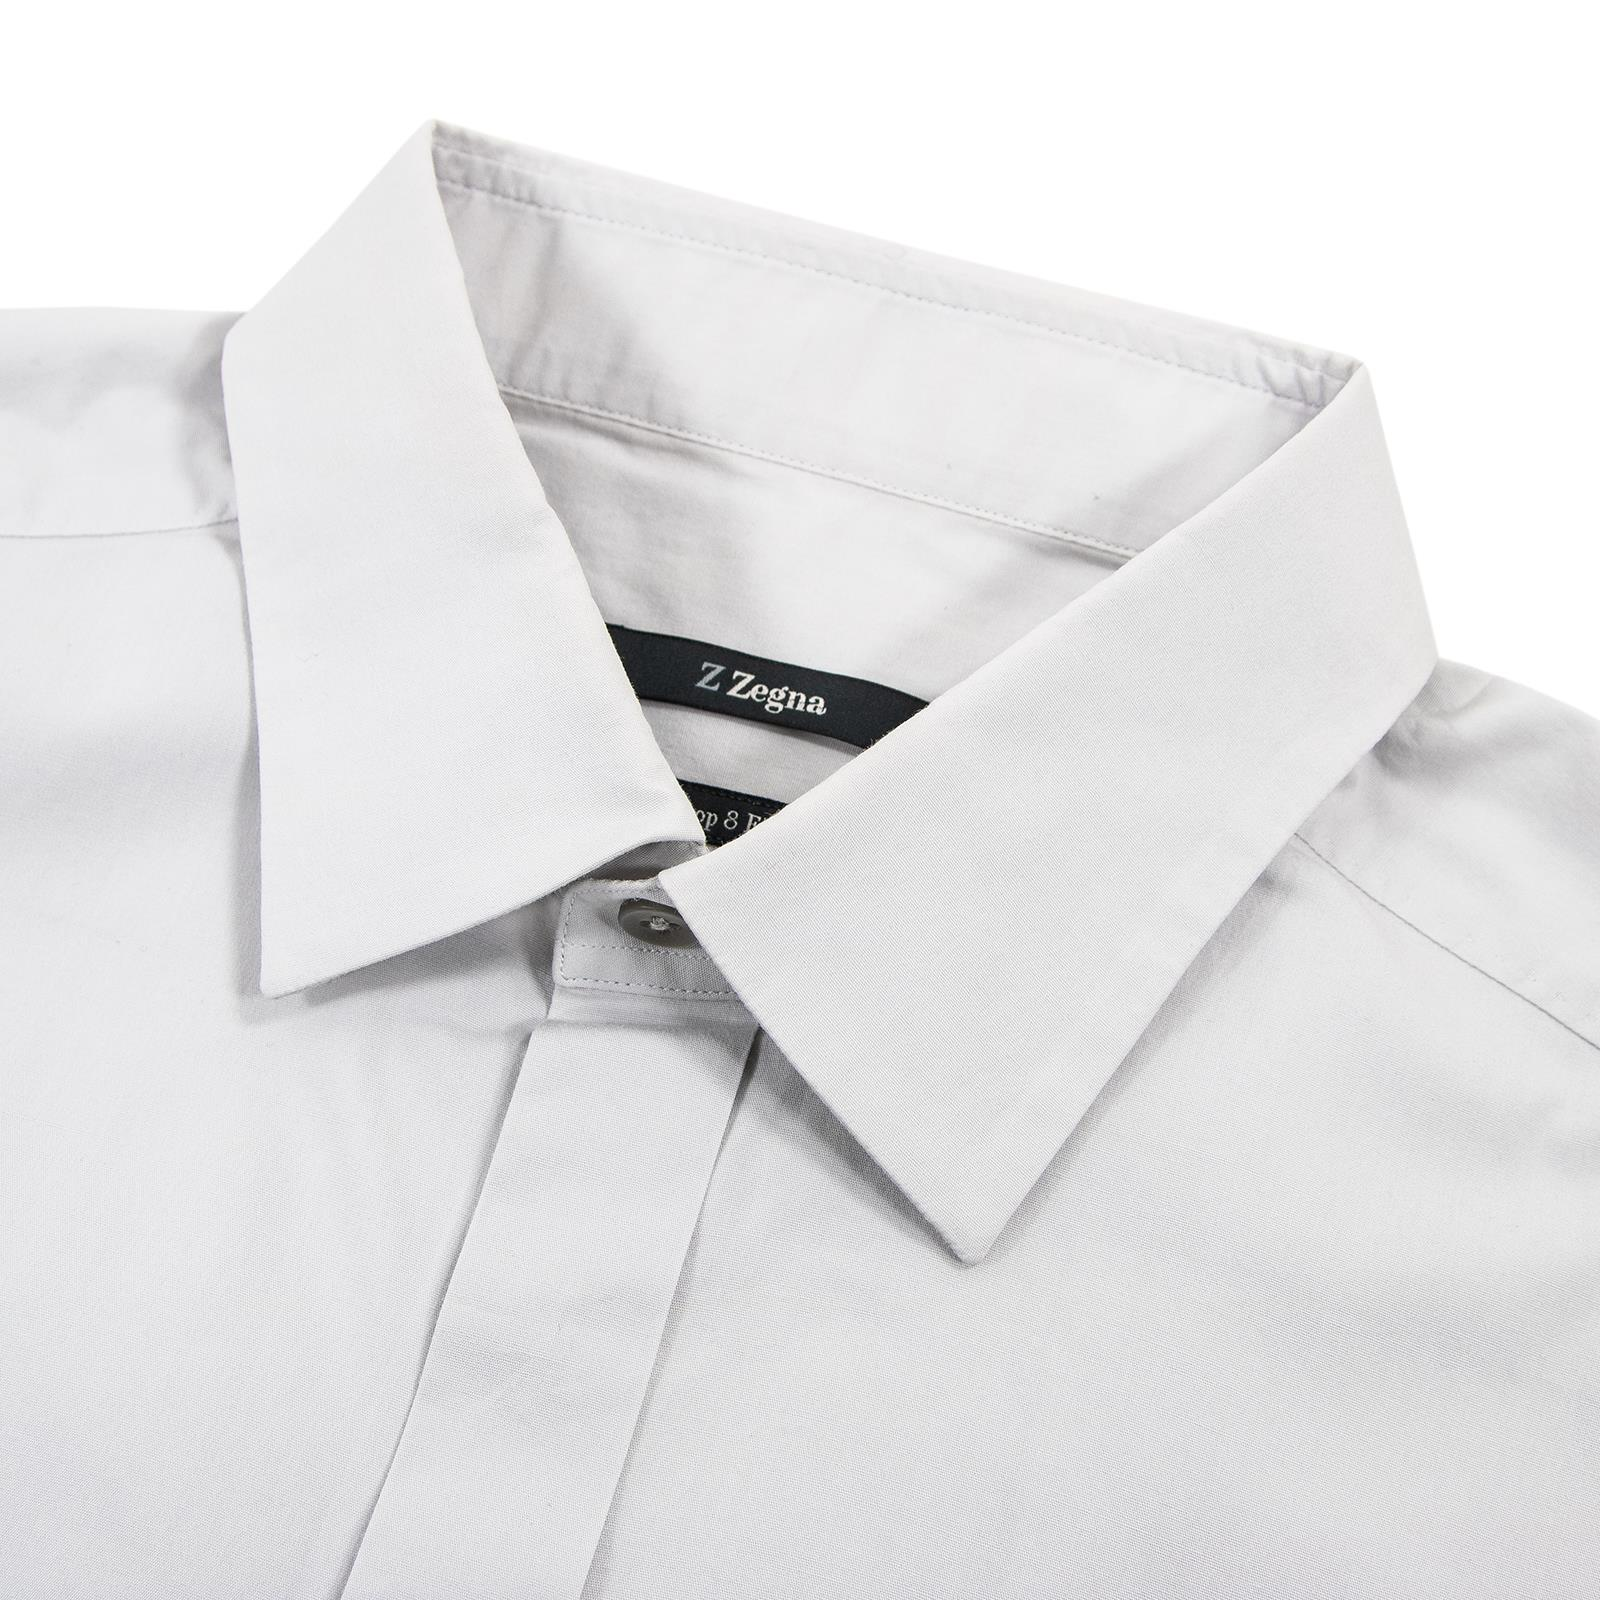 29a4ea8d3c Details about Z Zegna Drop 8 Fit Cloud Grey Cotton Semi-Spread Dress Shirt  41EU/16US